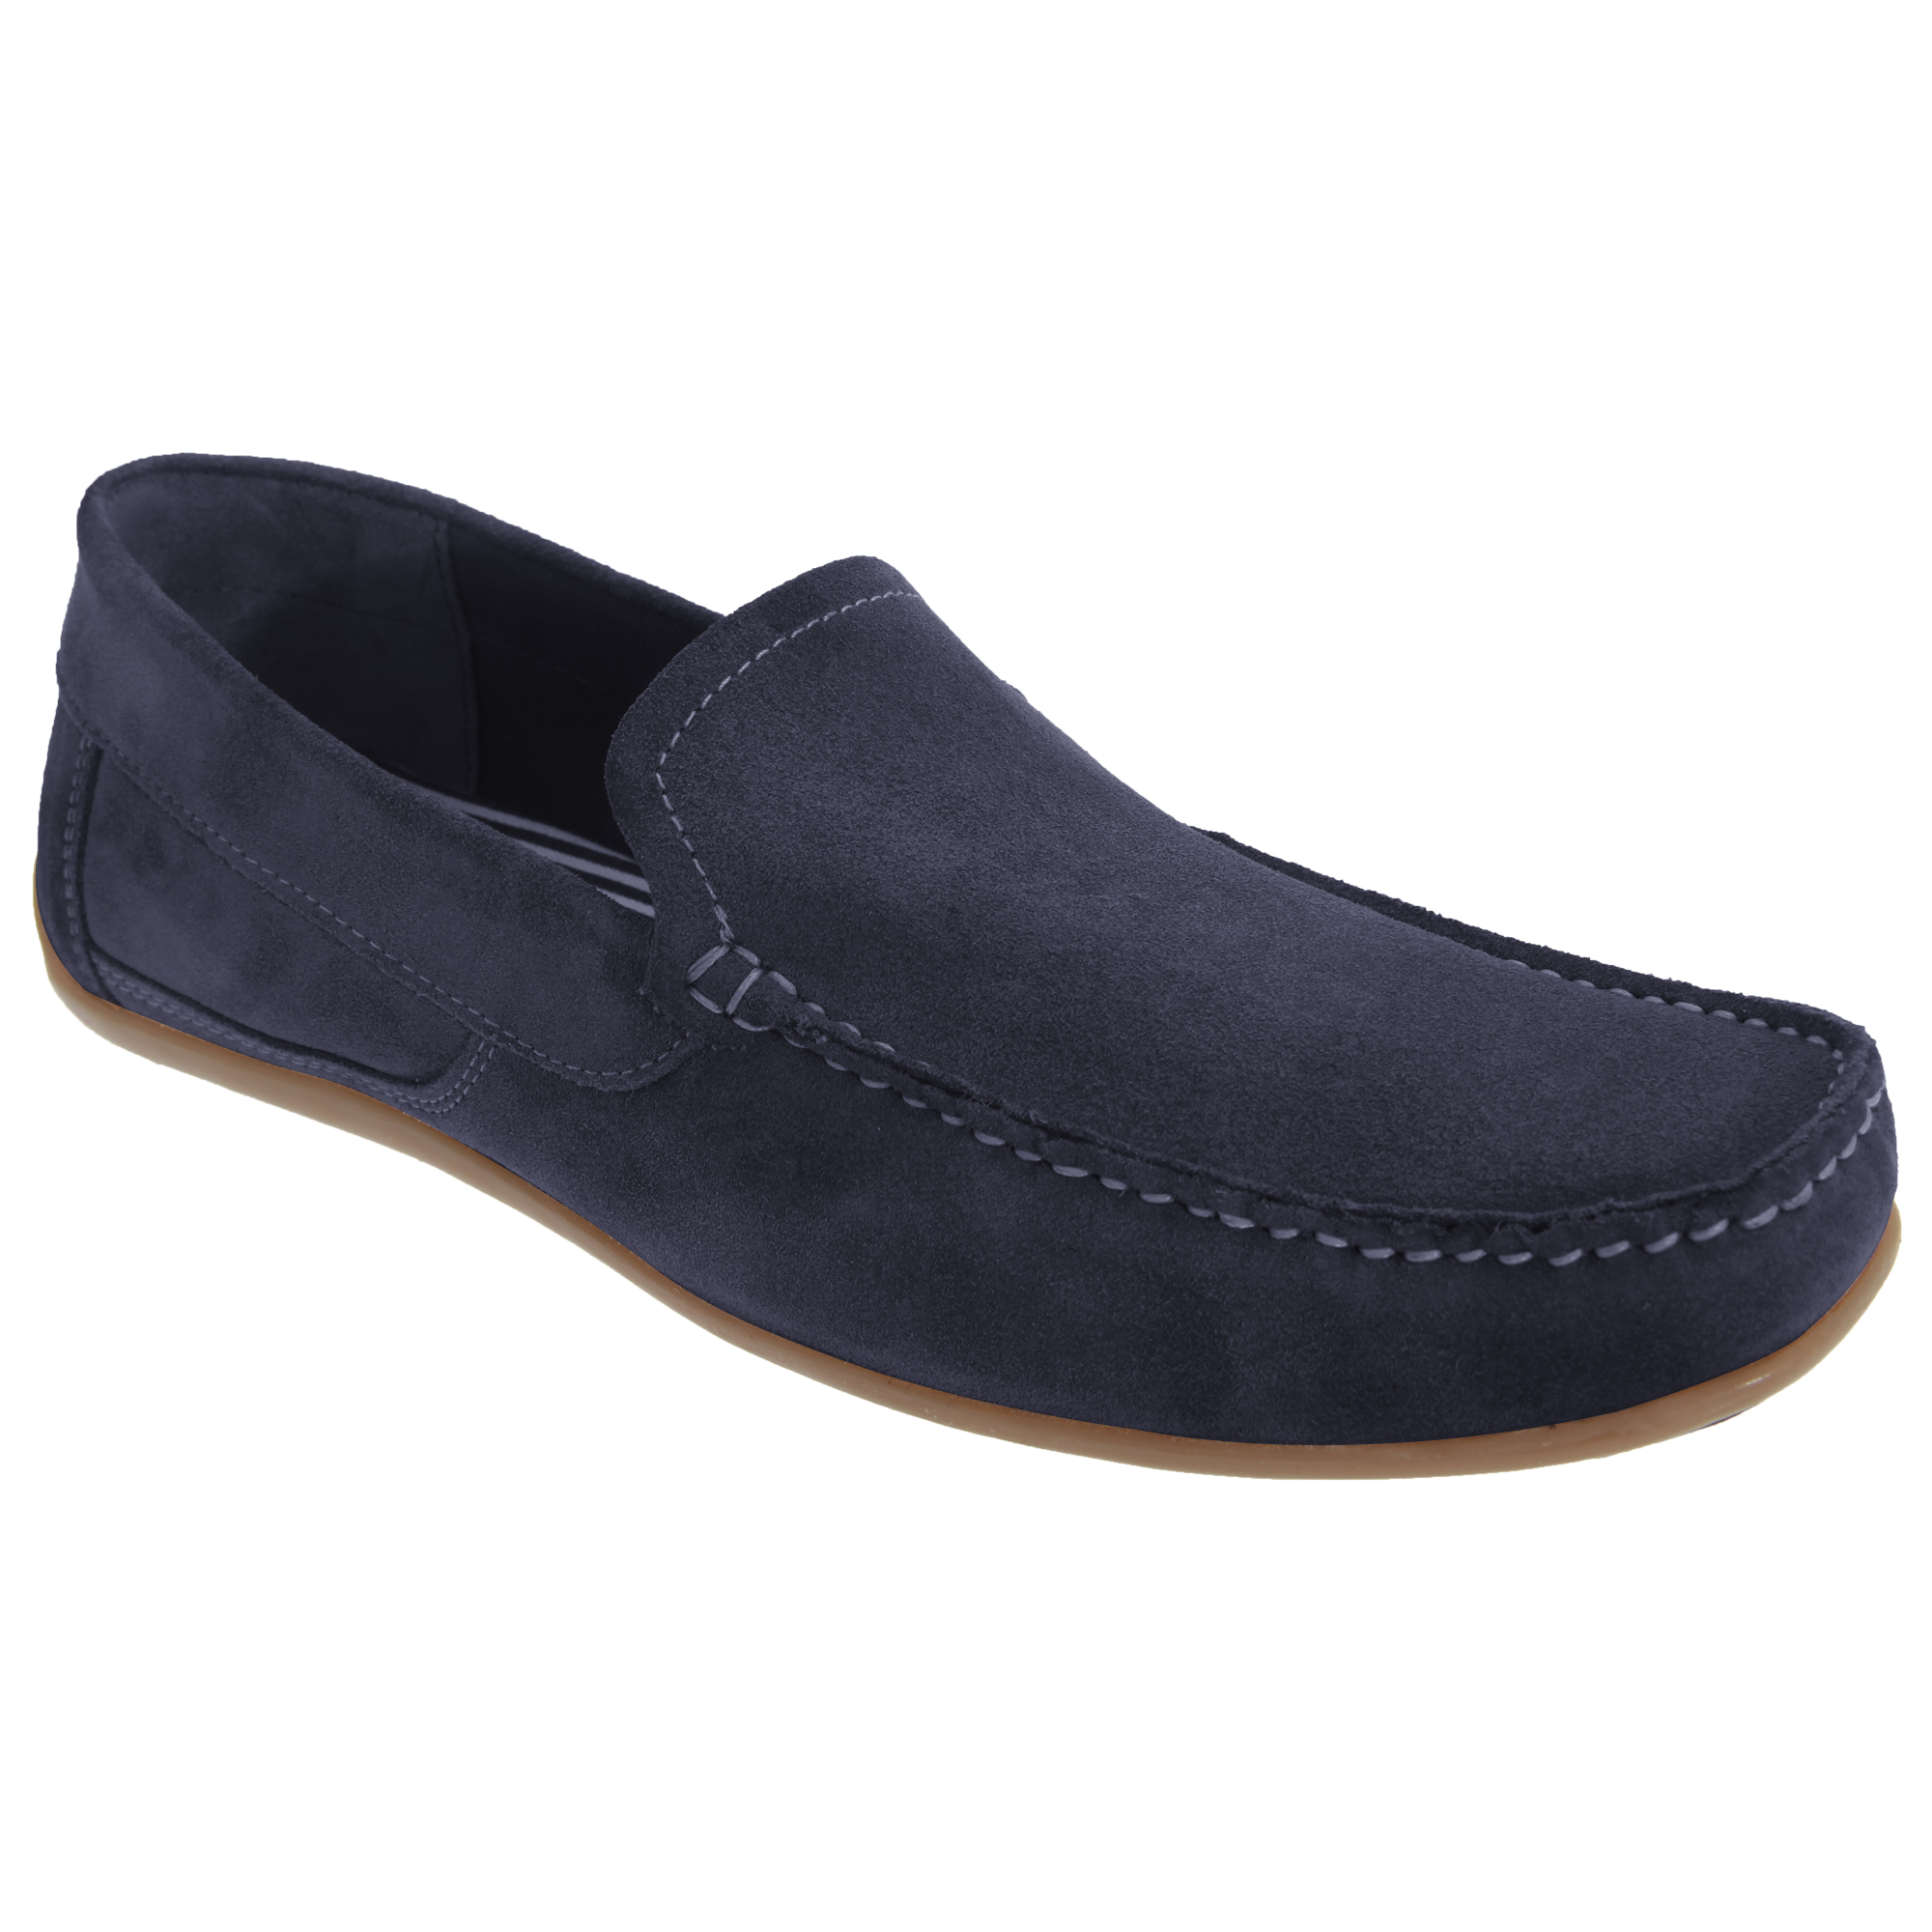 Real Leather Moccasin Shoes